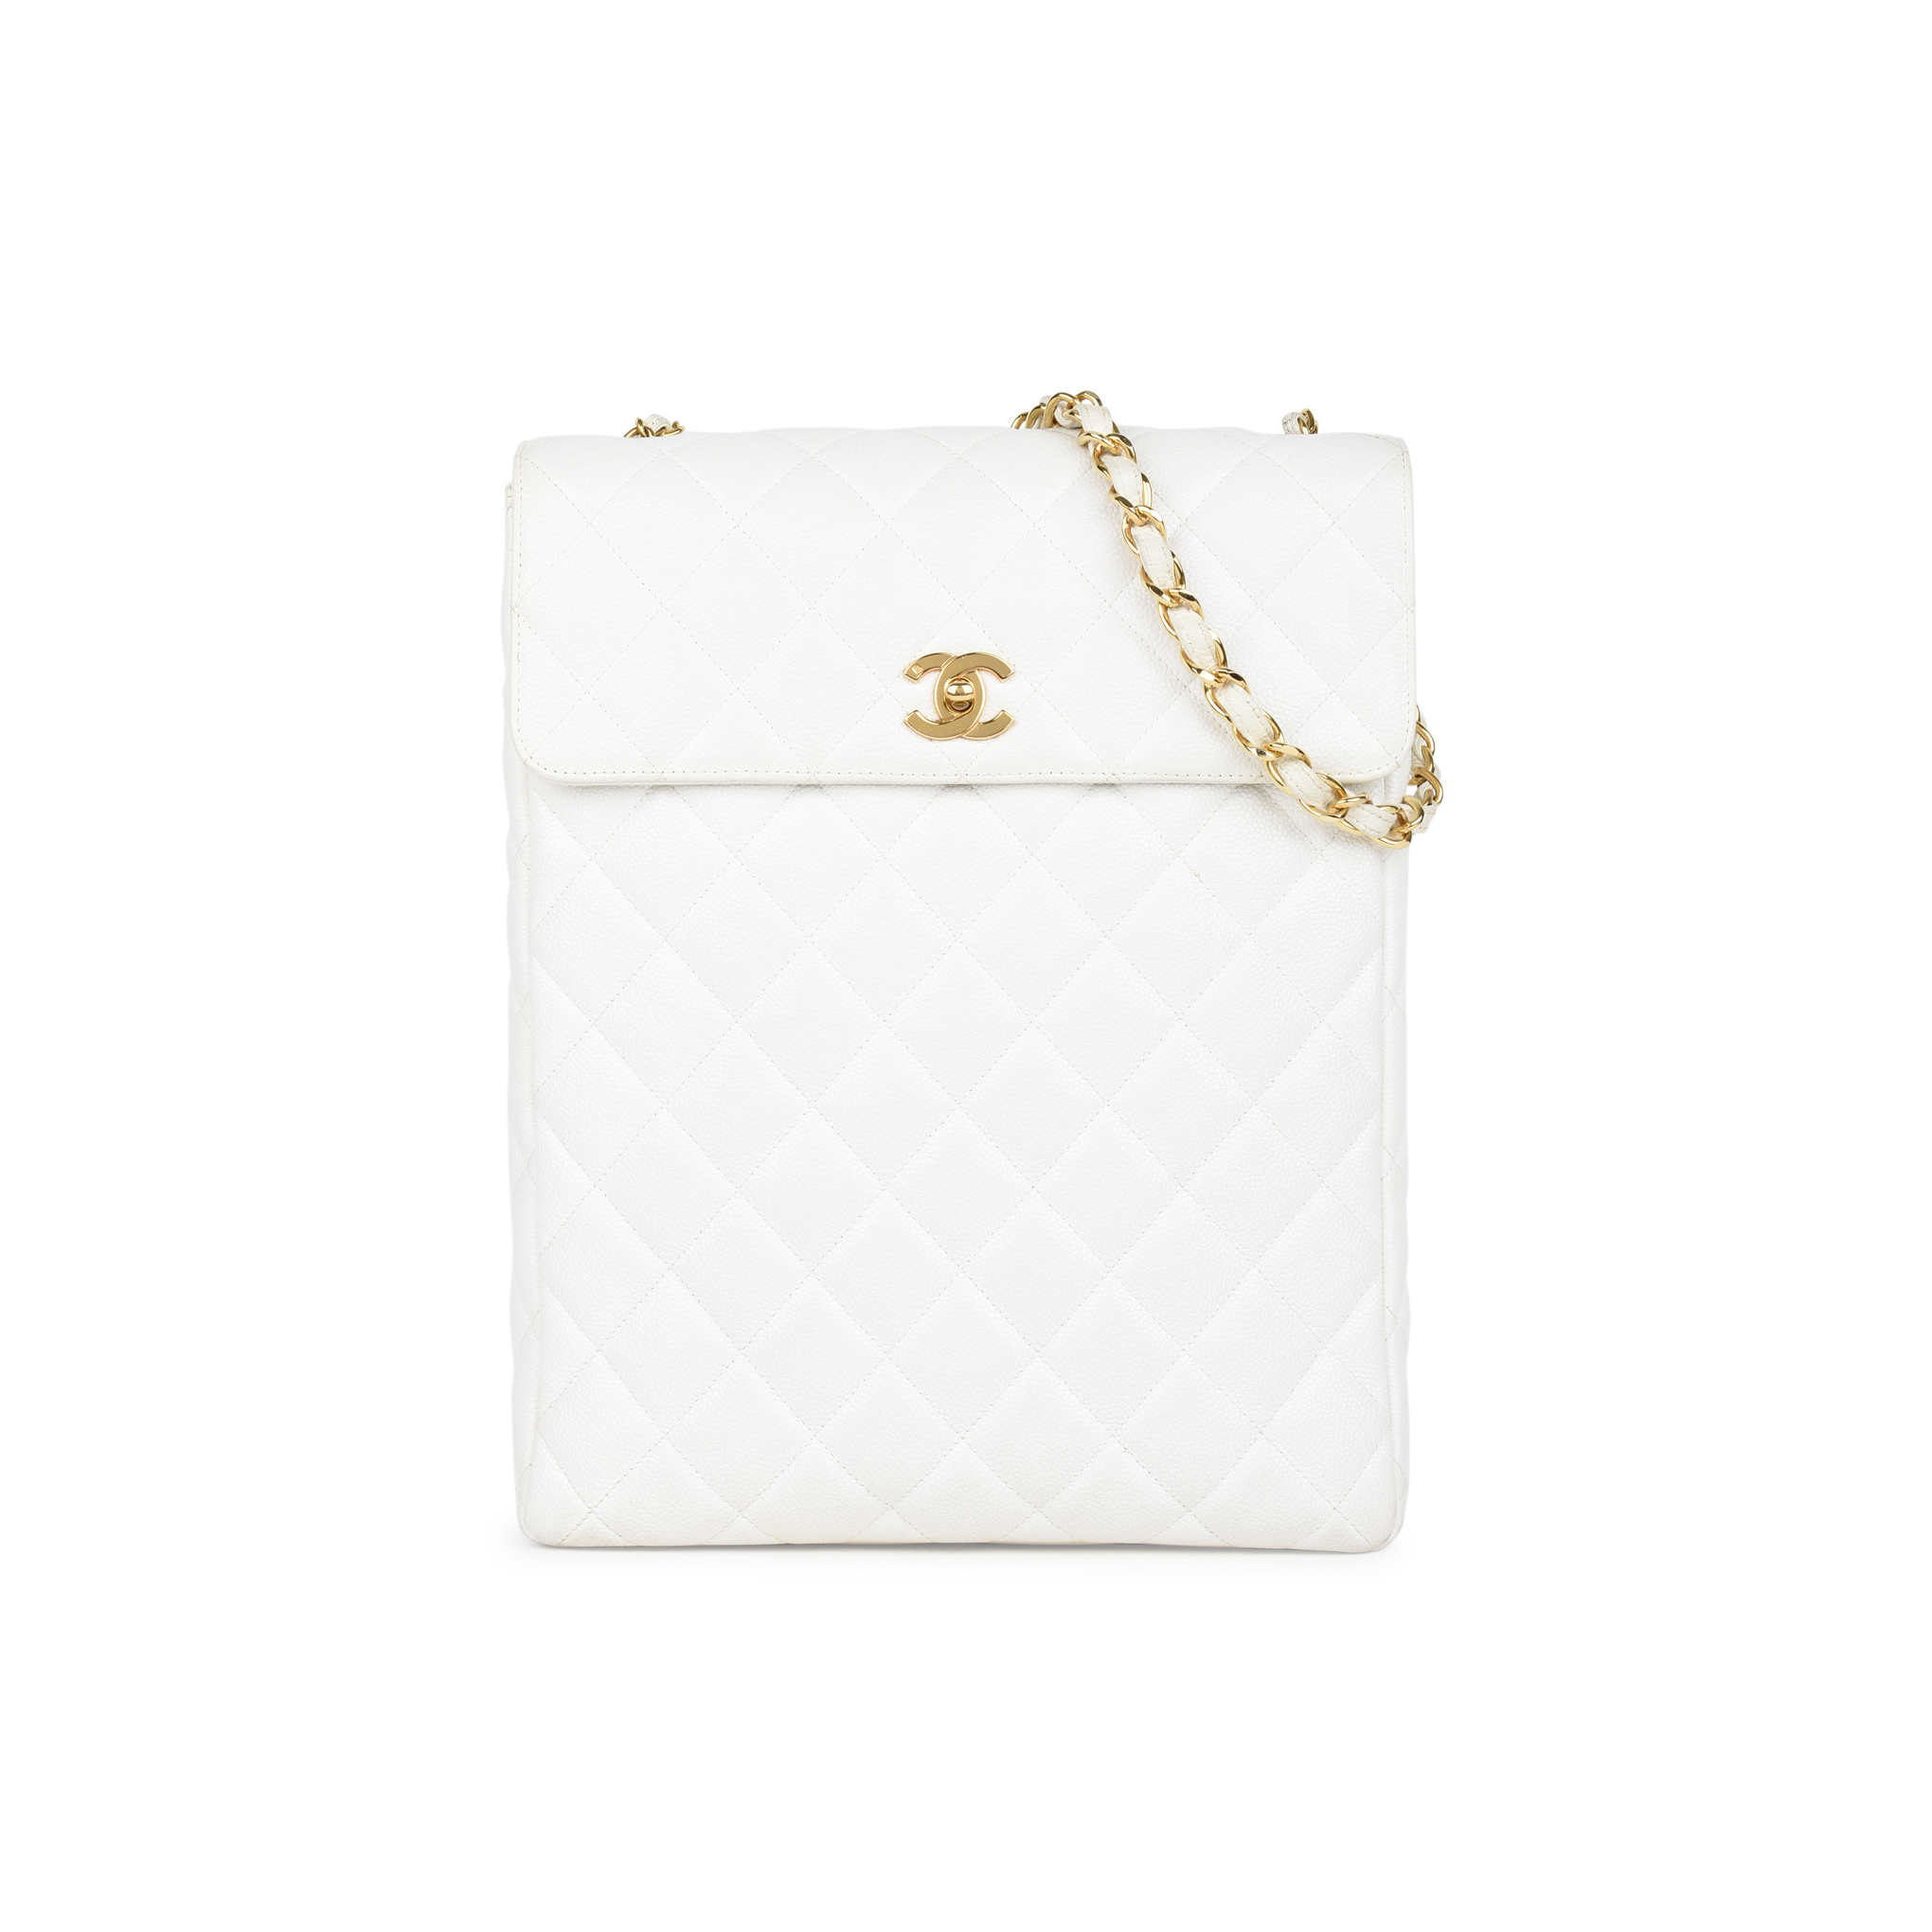 750970a42ead75 Authentic Vintage Chanel Large Caviar Quilt Flap Bag (PSS-441-00031) | THE  FIFTH COLLECTION